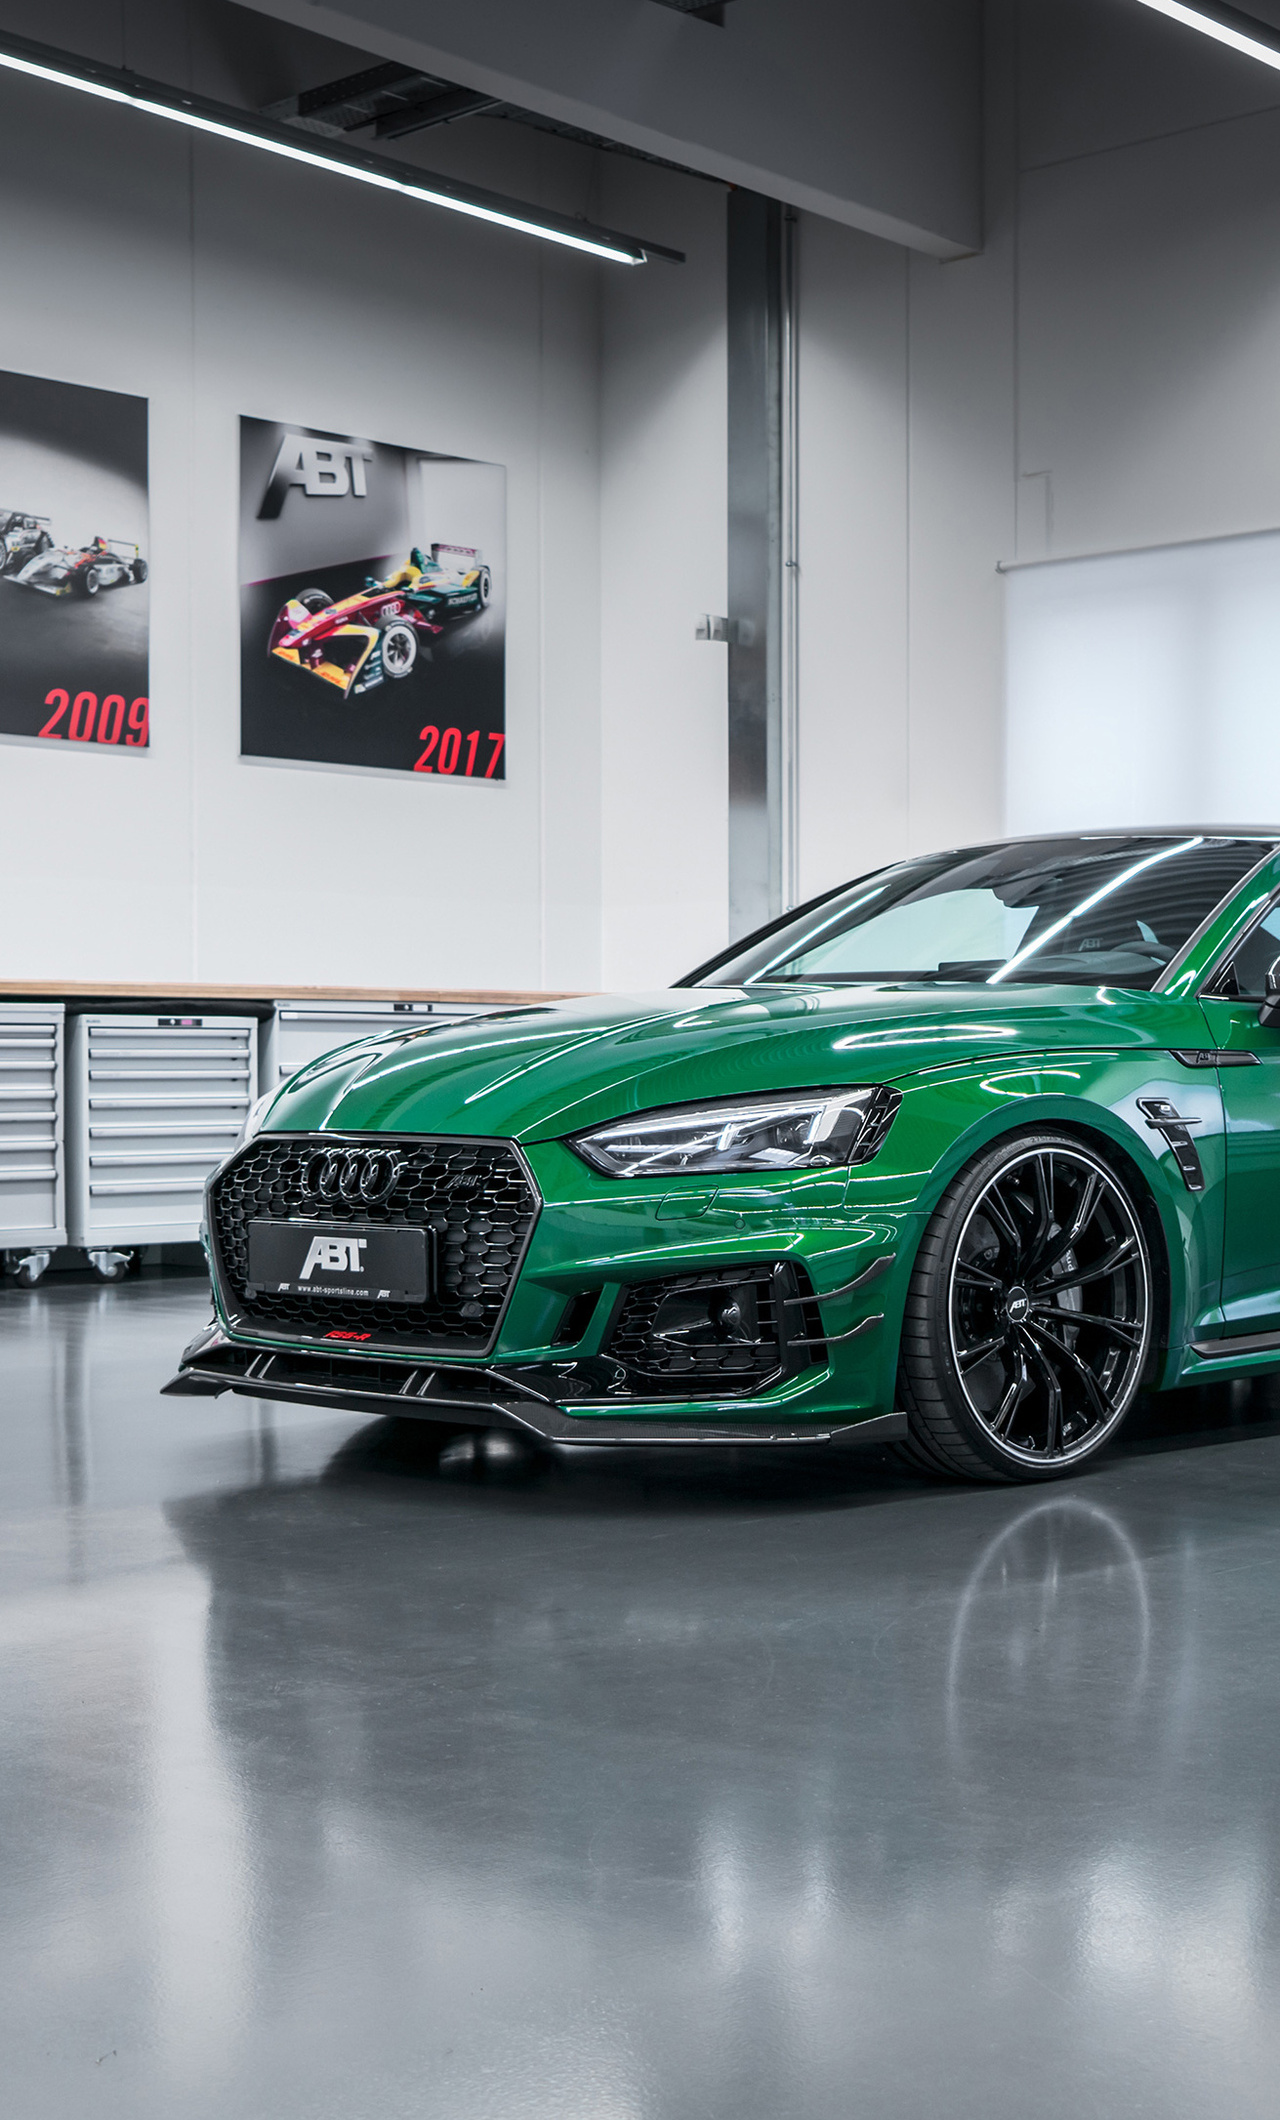 1280x2120 Audi Abt Rs 5 R Coupe 2018 Iphone 6 Hd 4k Wallpapers